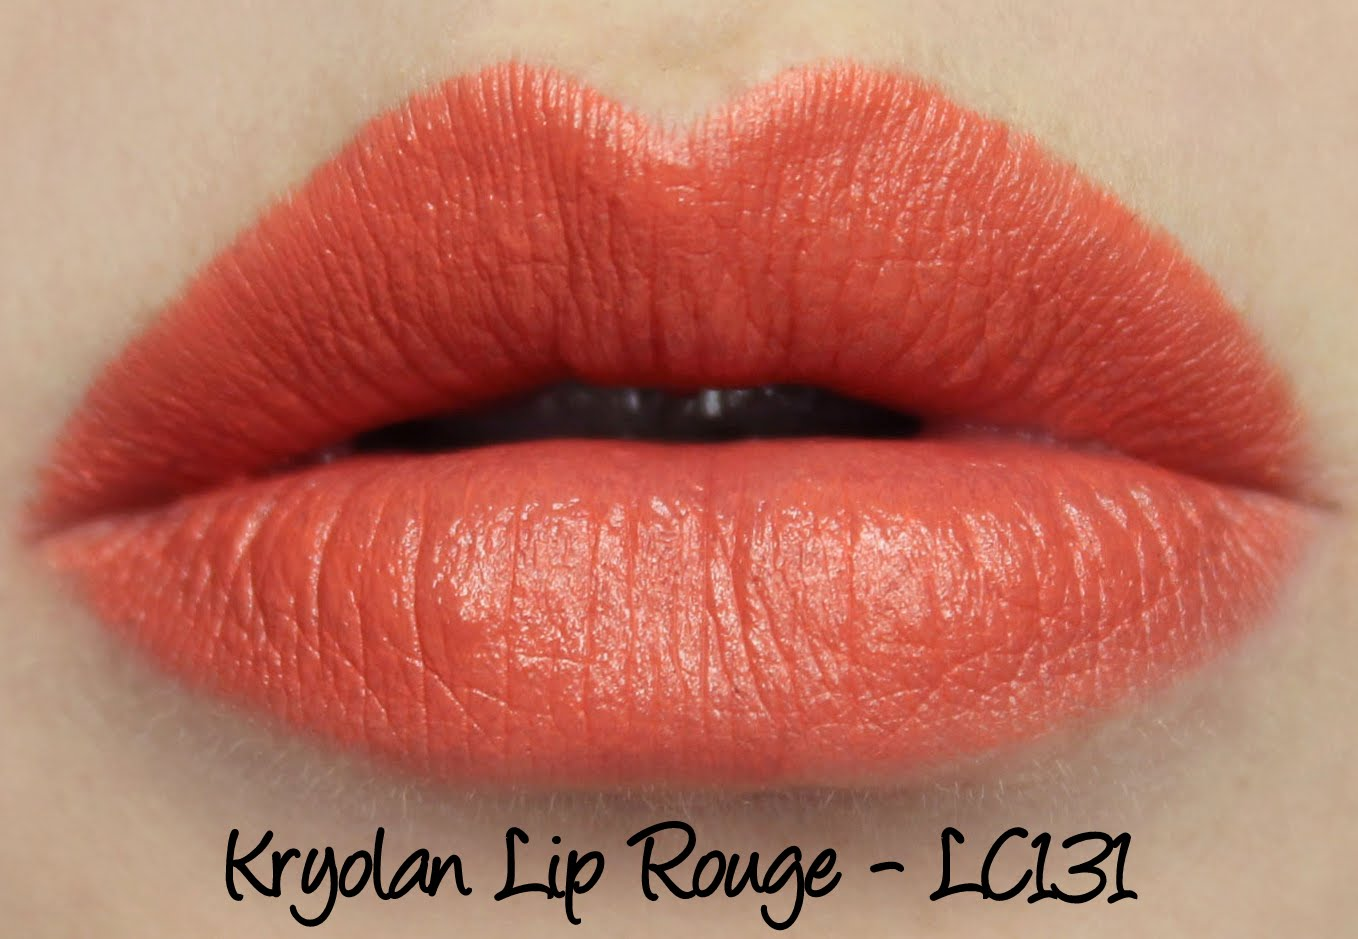 Kryolan Lip Rouge Classic Lipstick LC131 Swatches & Review